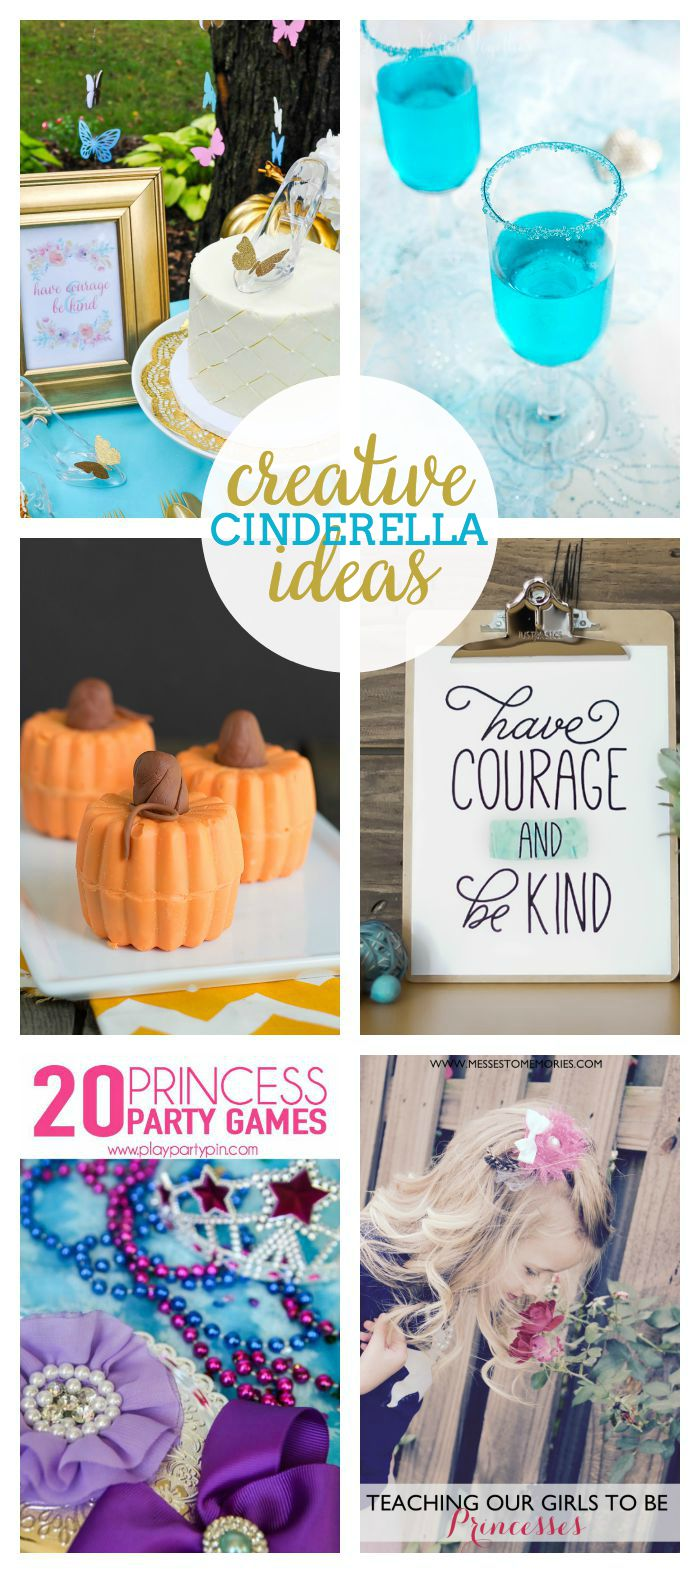 A Collection of Cinderella Ideas - From parties to recipes and printables, you won't want to miss these ideas!